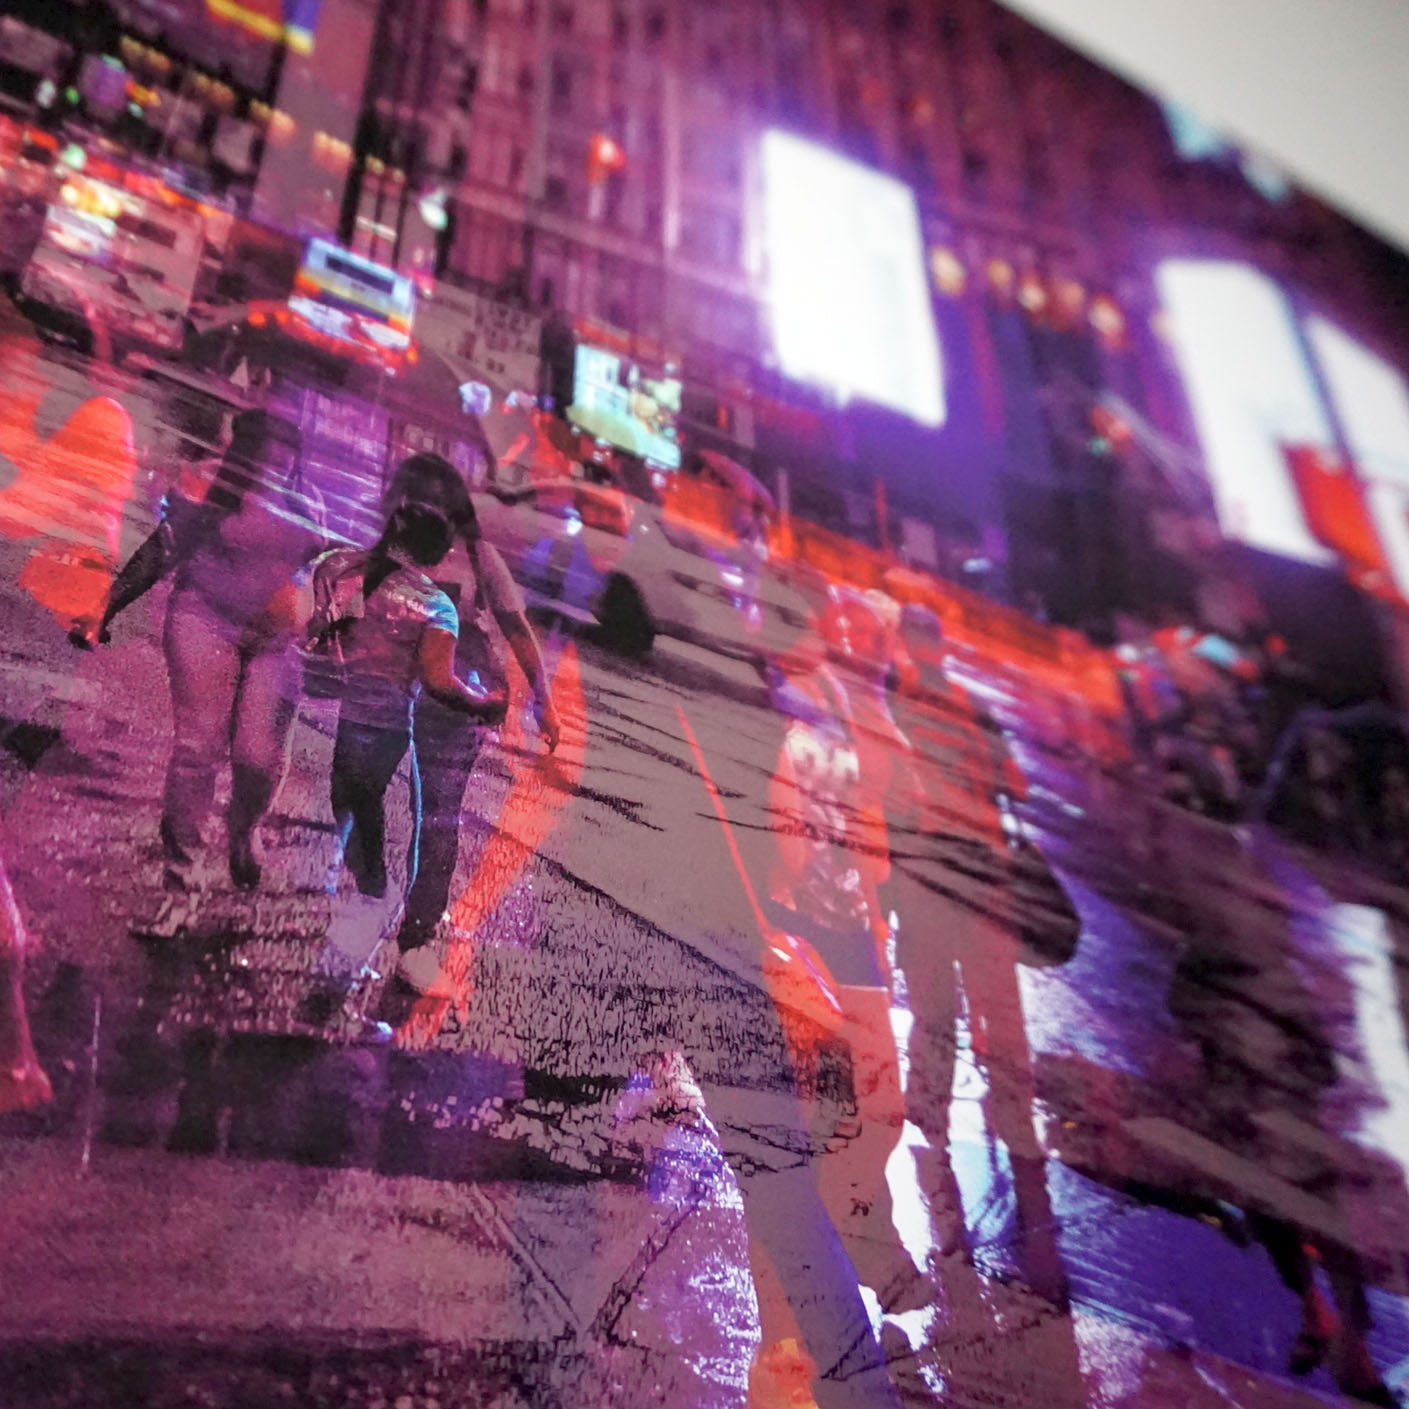 Close up shot of a Limited Edition colour fine art photography A2 size art giclee print taken on the streets of New York City